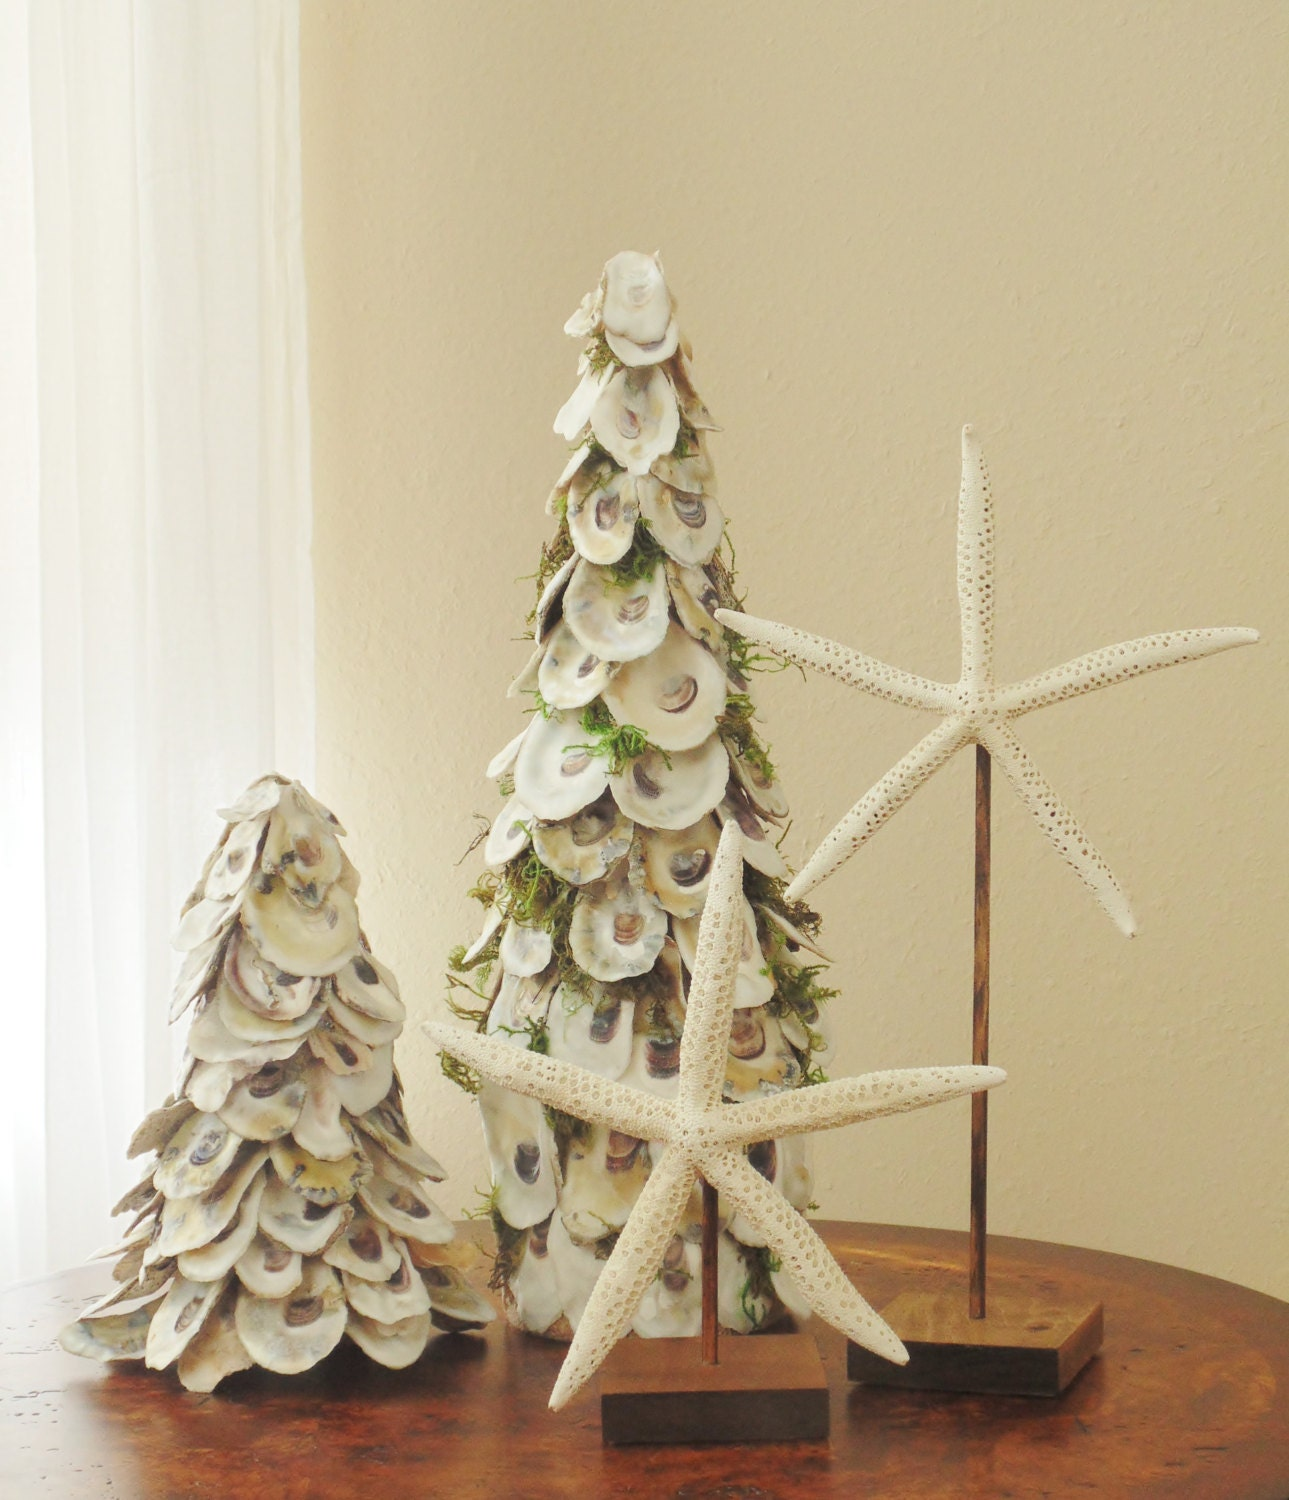 Oyster shells oyster shell home decor oyster tree farmhouse for Shells decorations home